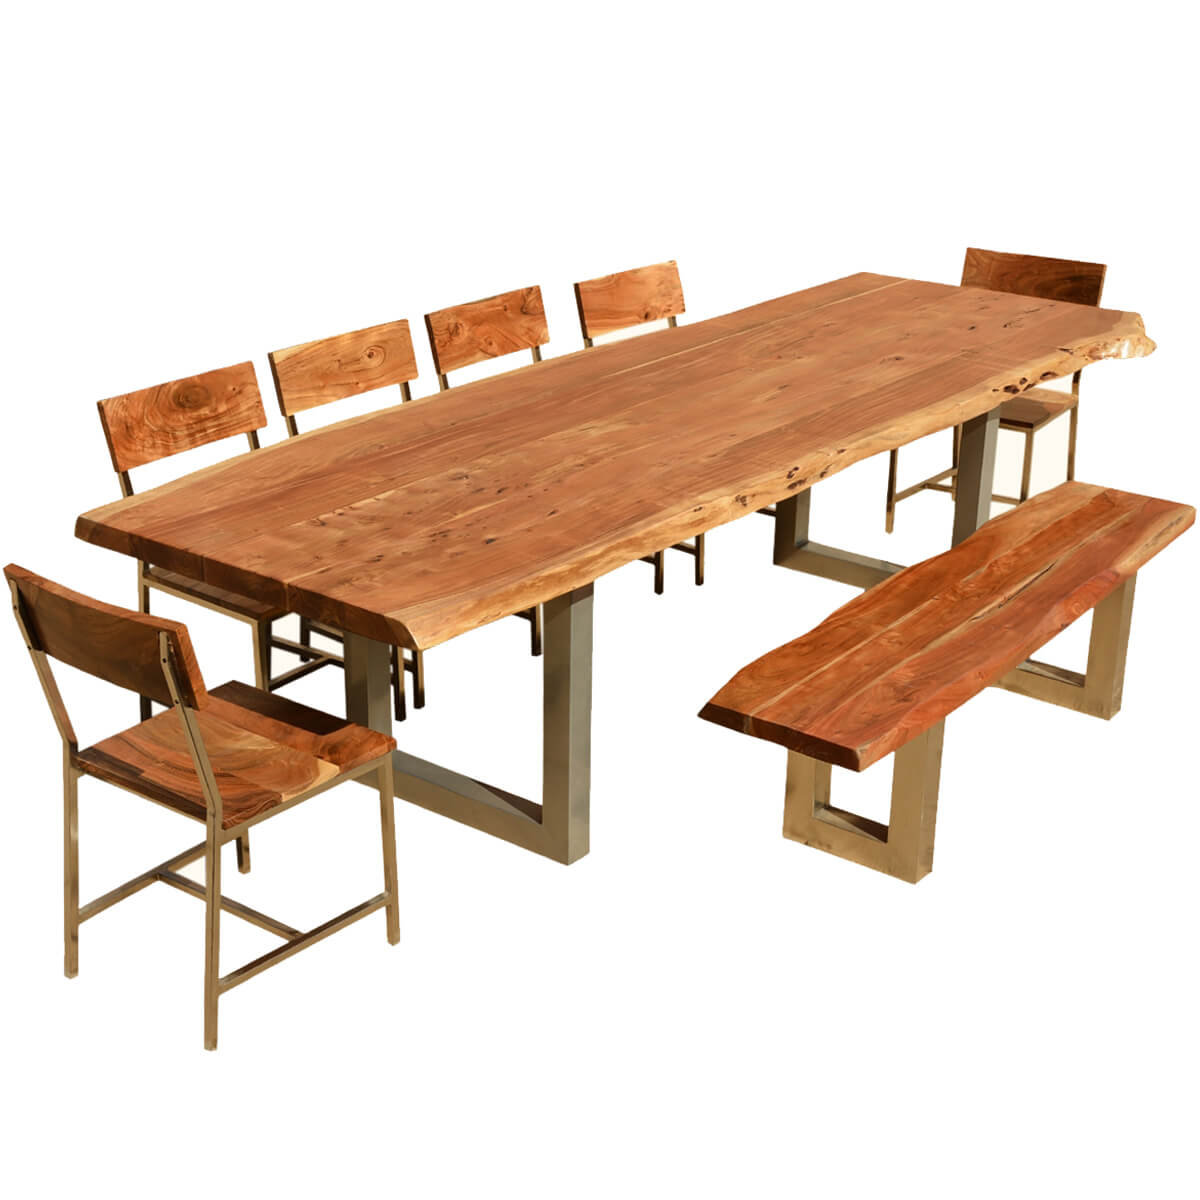 117 live edge dining table w 6 chairs bench acacia for Hardwood dining table